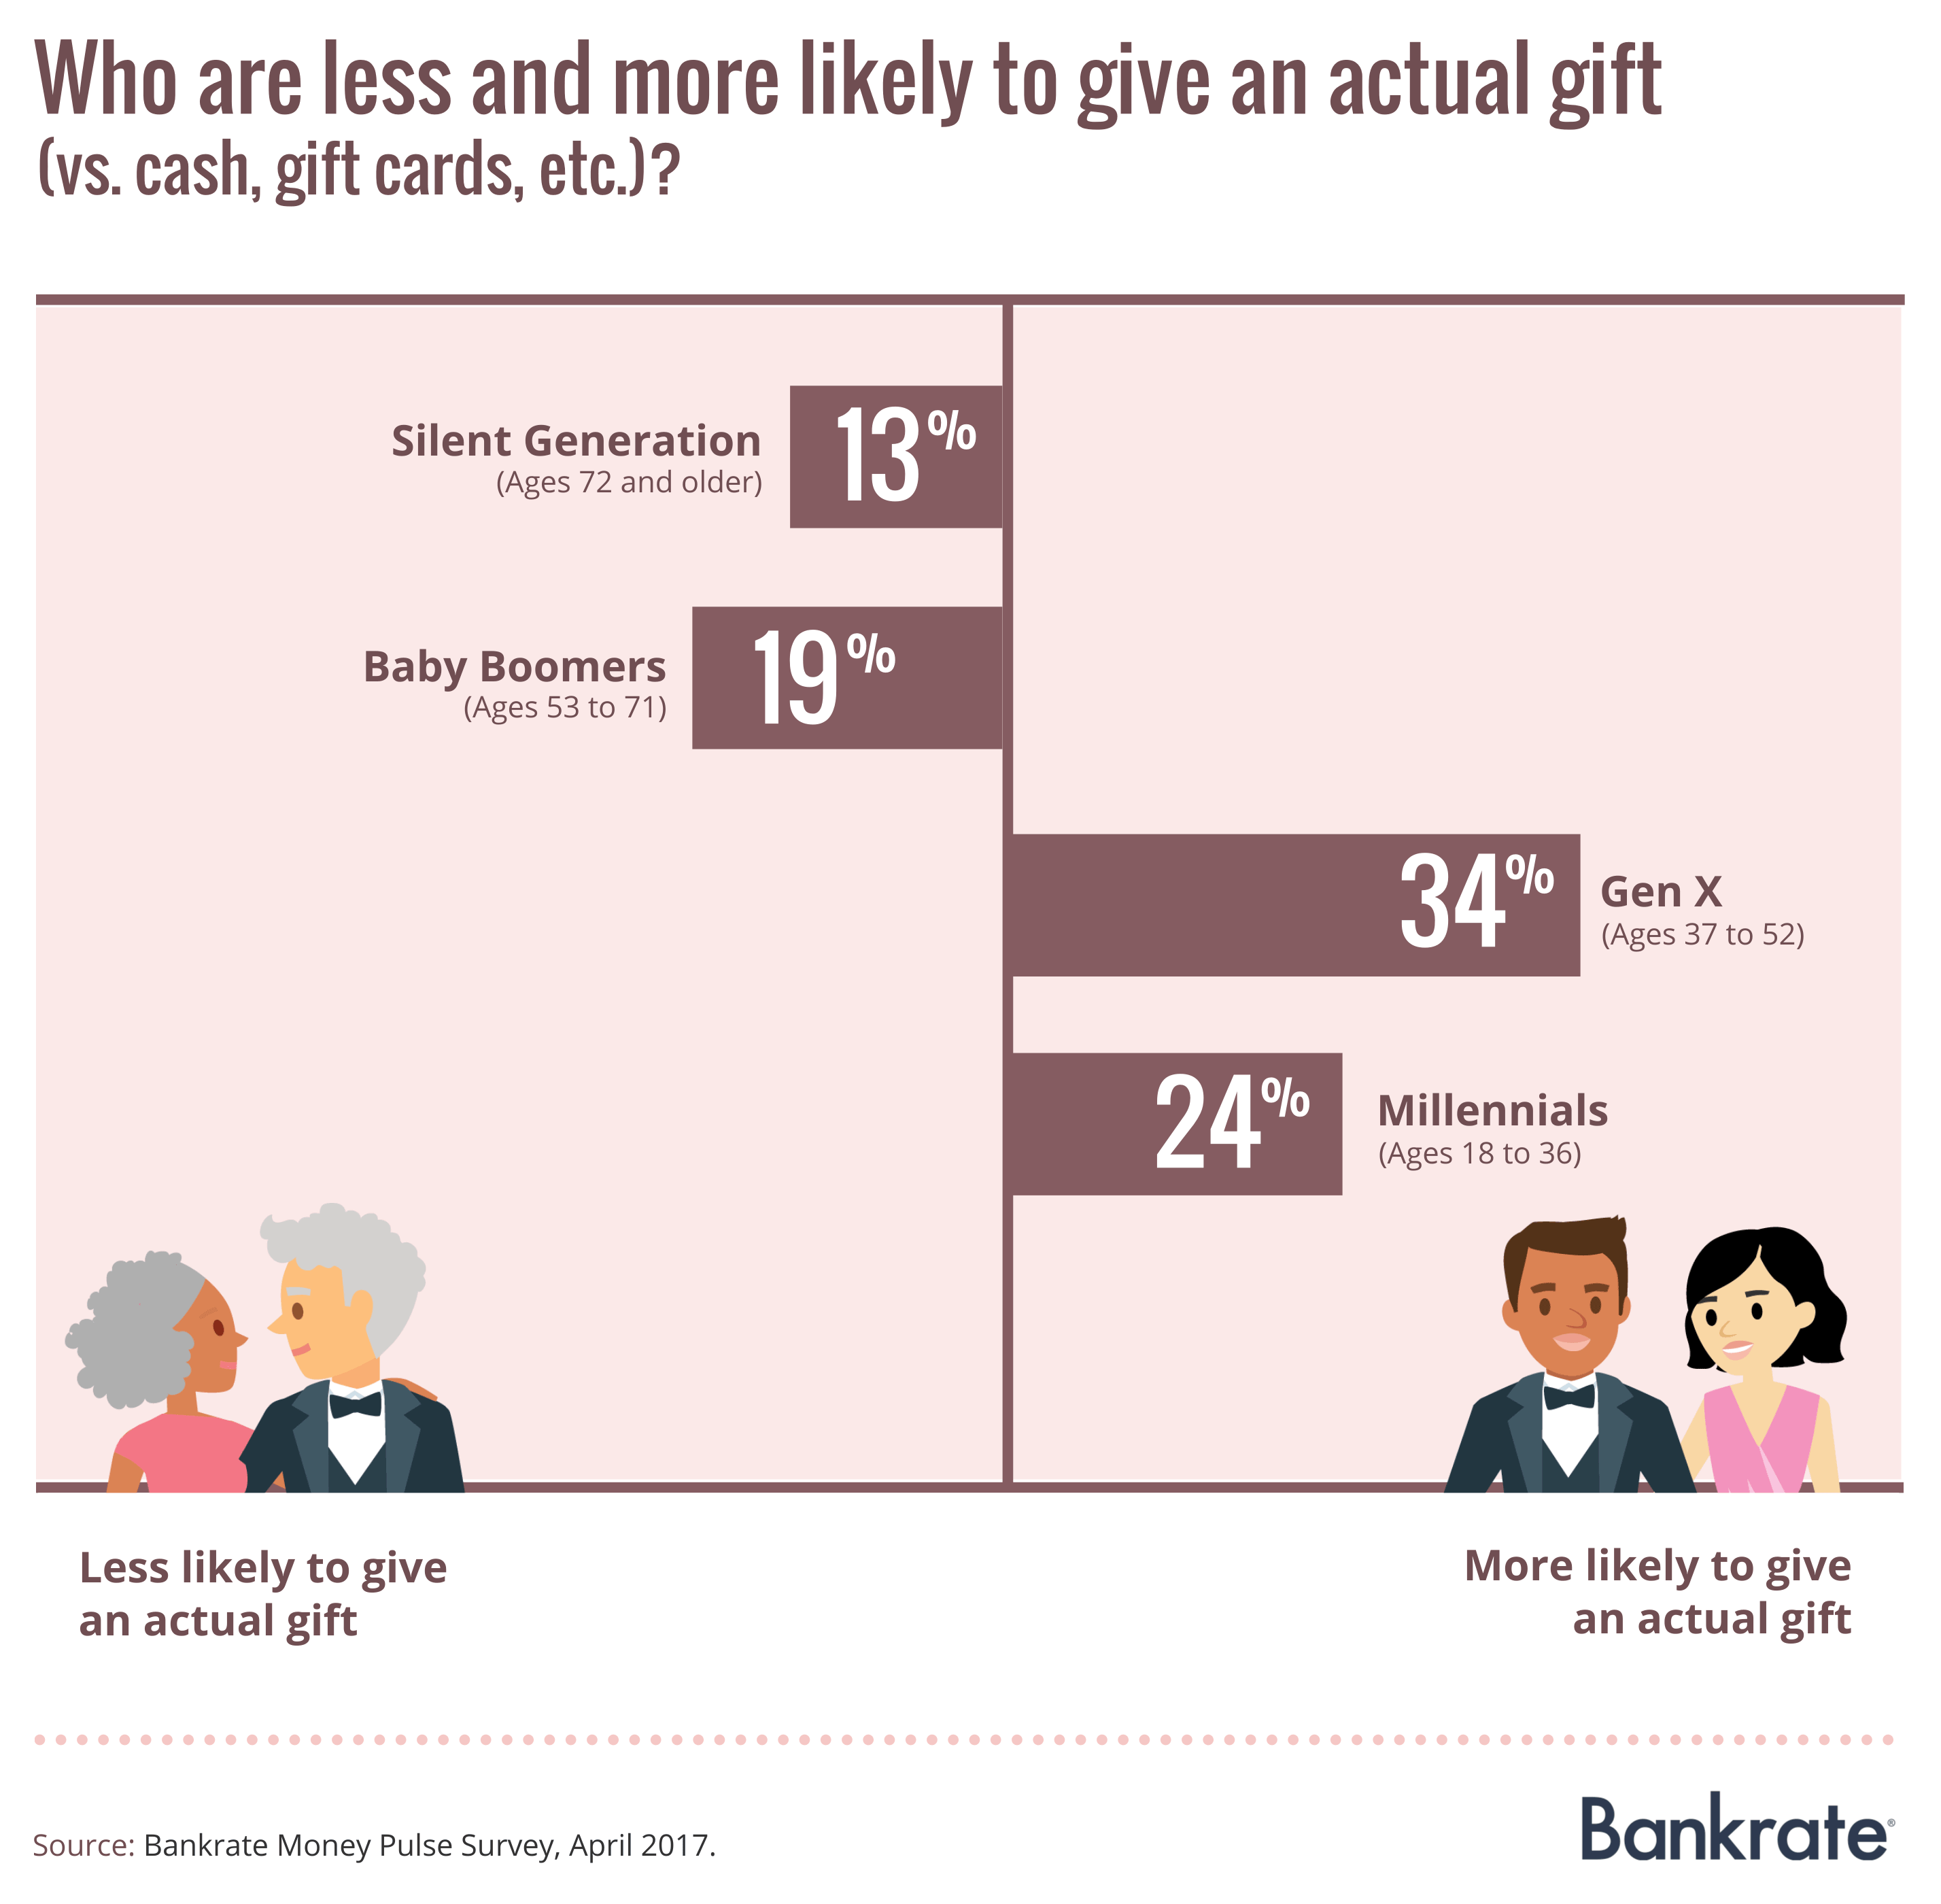 Who are less and more likely to give an actual gift?